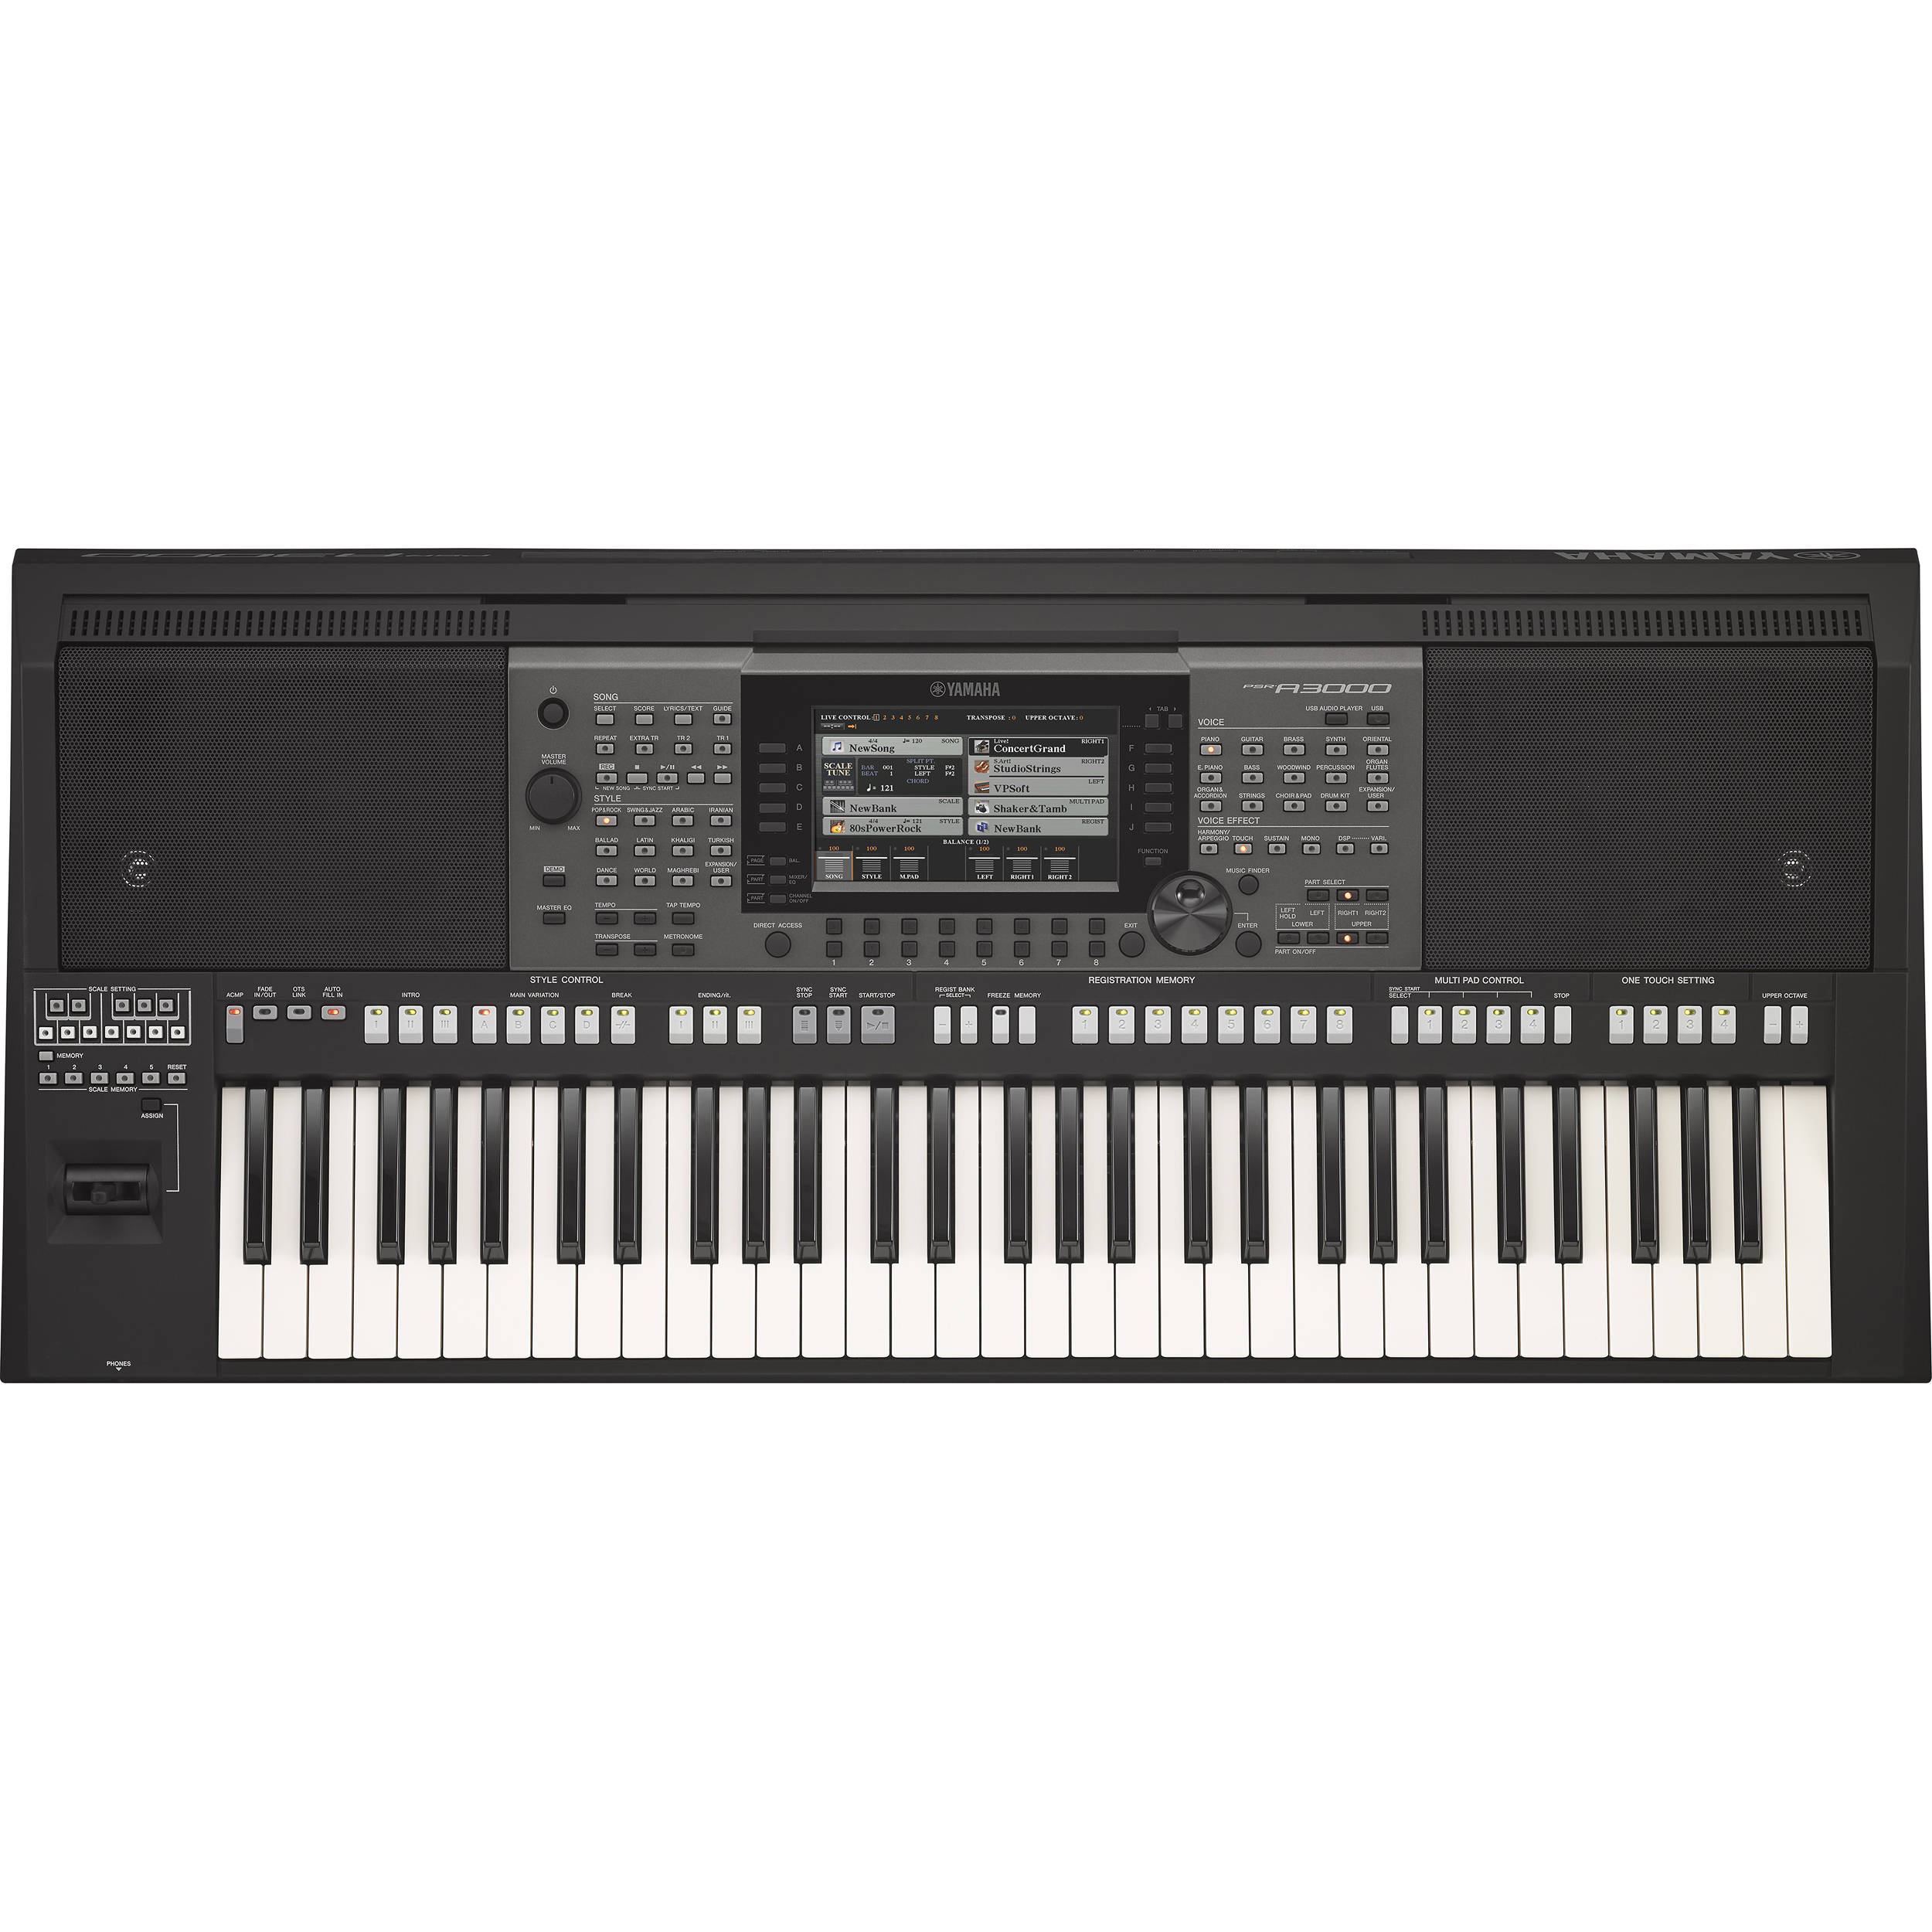 yamaha psr a3000 world content arranger keyboard psra3000 b h. Black Bedroom Furniture Sets. Home Design Ideas